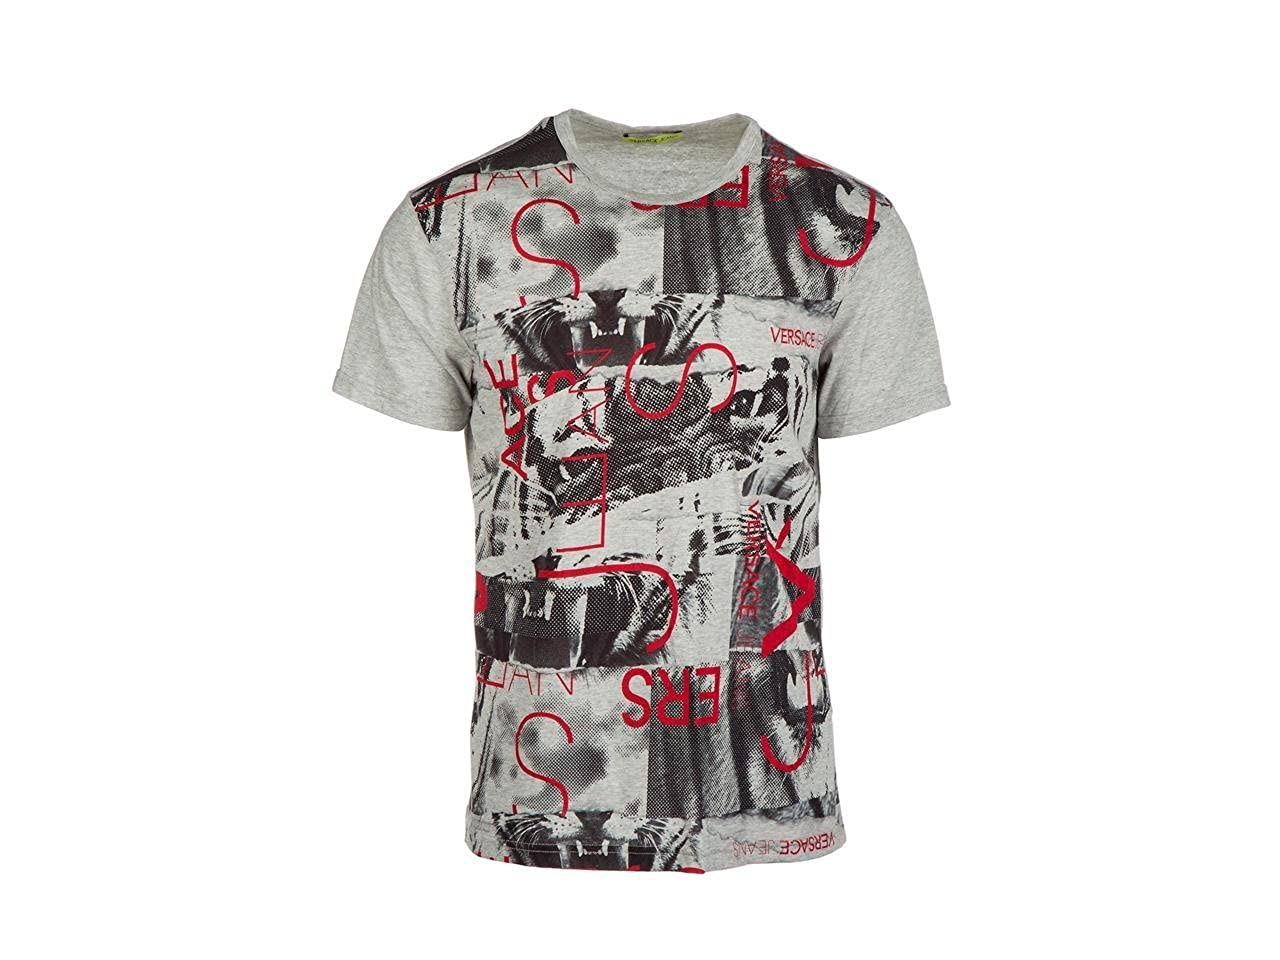 880a5adc73a8 Amazon.com  Versace Jeans Crew Neck Grey T-Shirt (Small)  Clothing